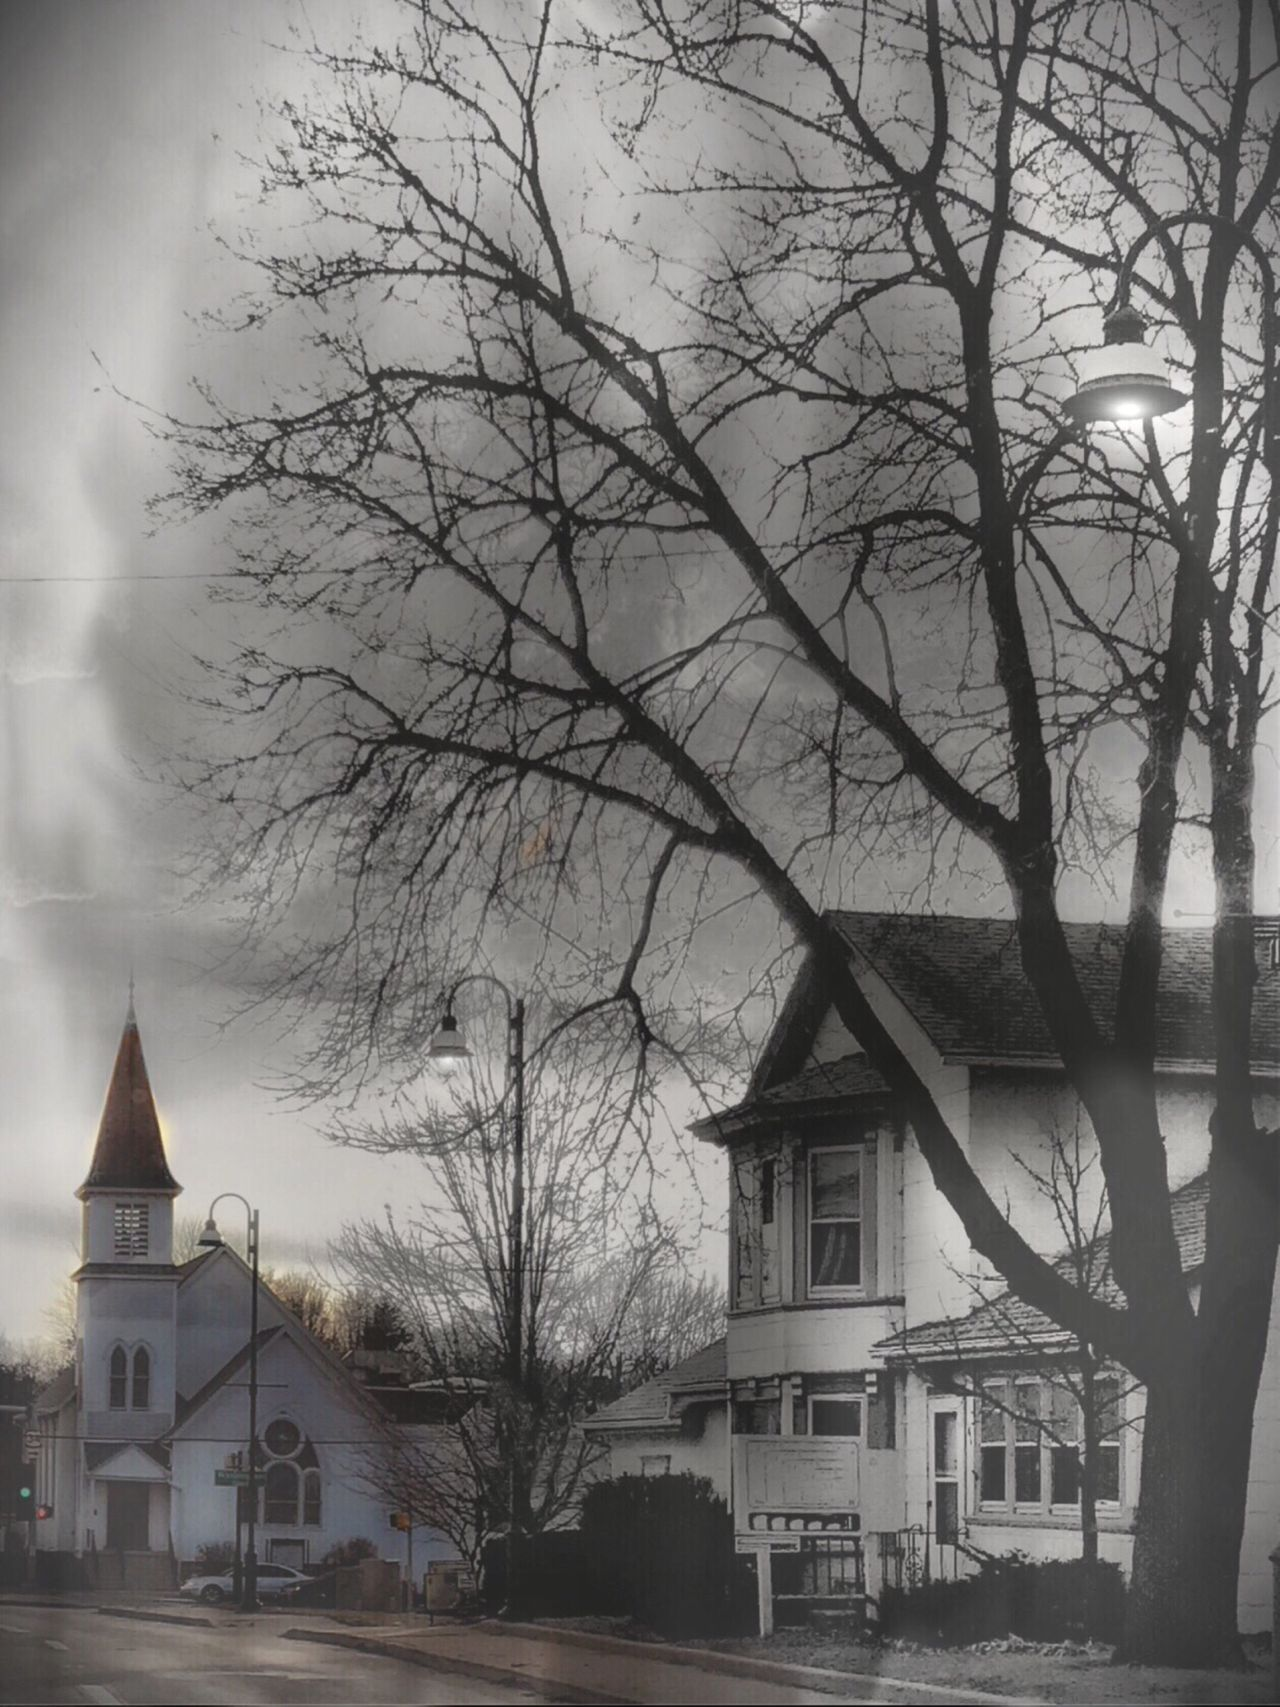 The White Church Architecture Bare Tree Building Exterior Tree Winter Built Structure Snow Cold Temperature Weather No People Religious Architecture Religious Place Residential Building City Downtown District Nature Outdoors Sky Day Beauty In Nature Oswego, IL Oswego, IL Downtown Oswego, IL